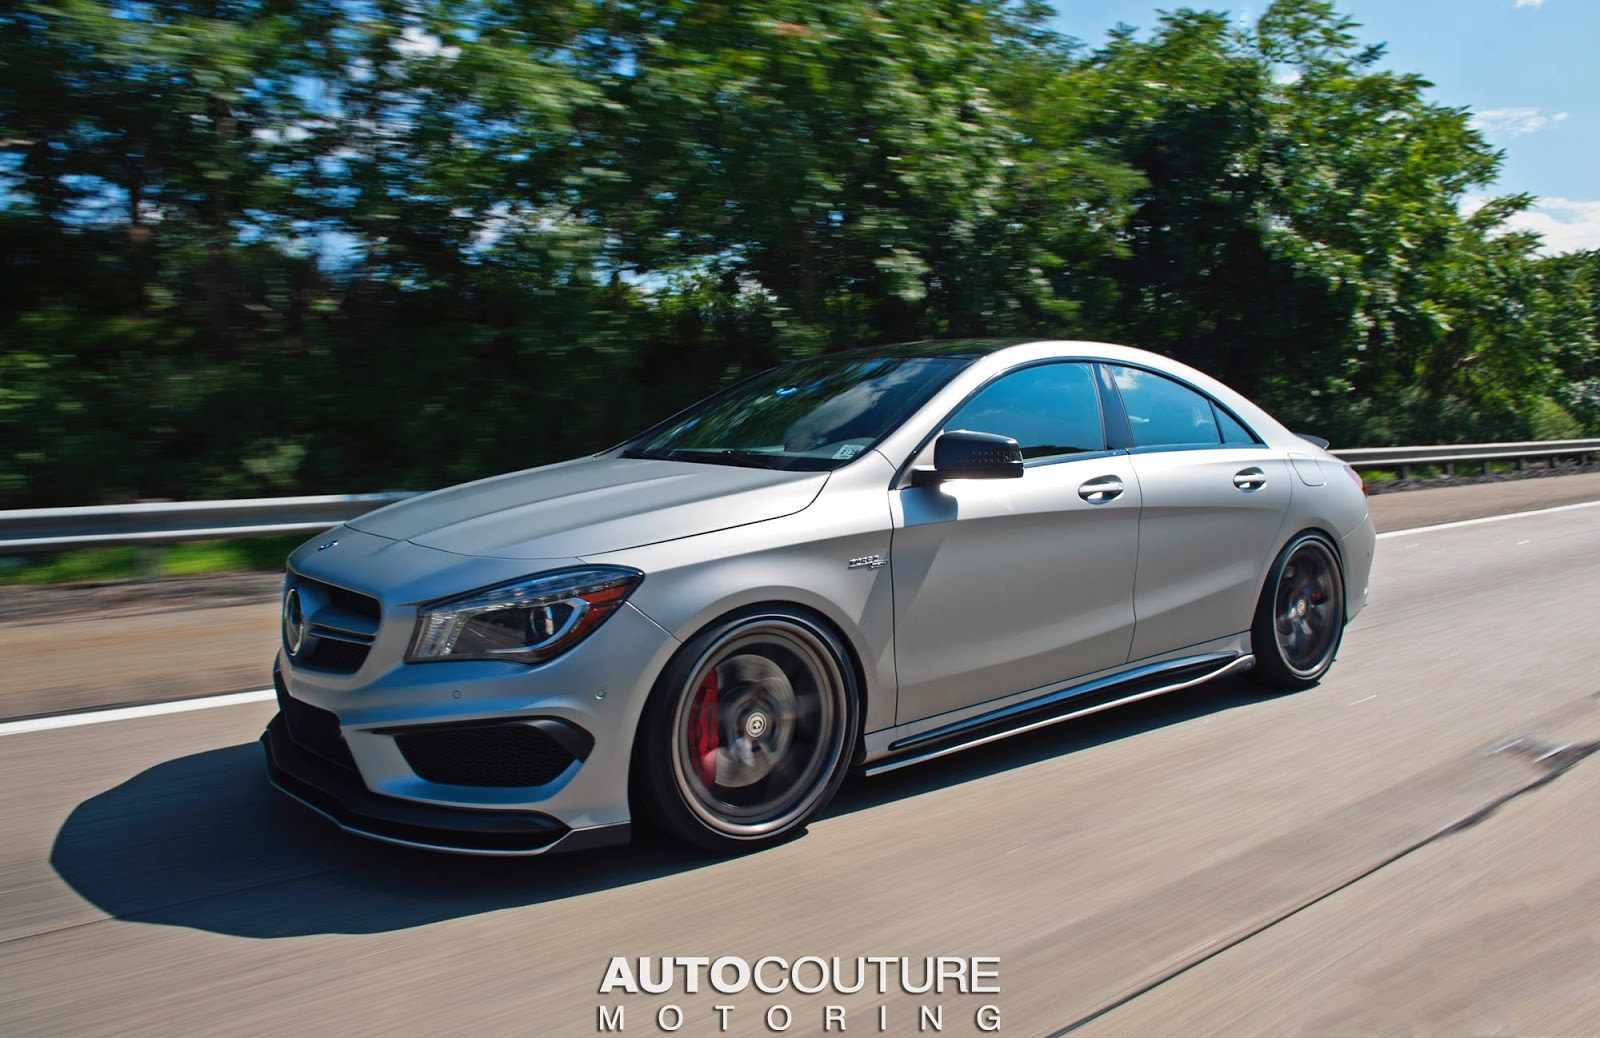 Mercedes Benz Cla 45 Amg With Some Styling Grunt Carscoops